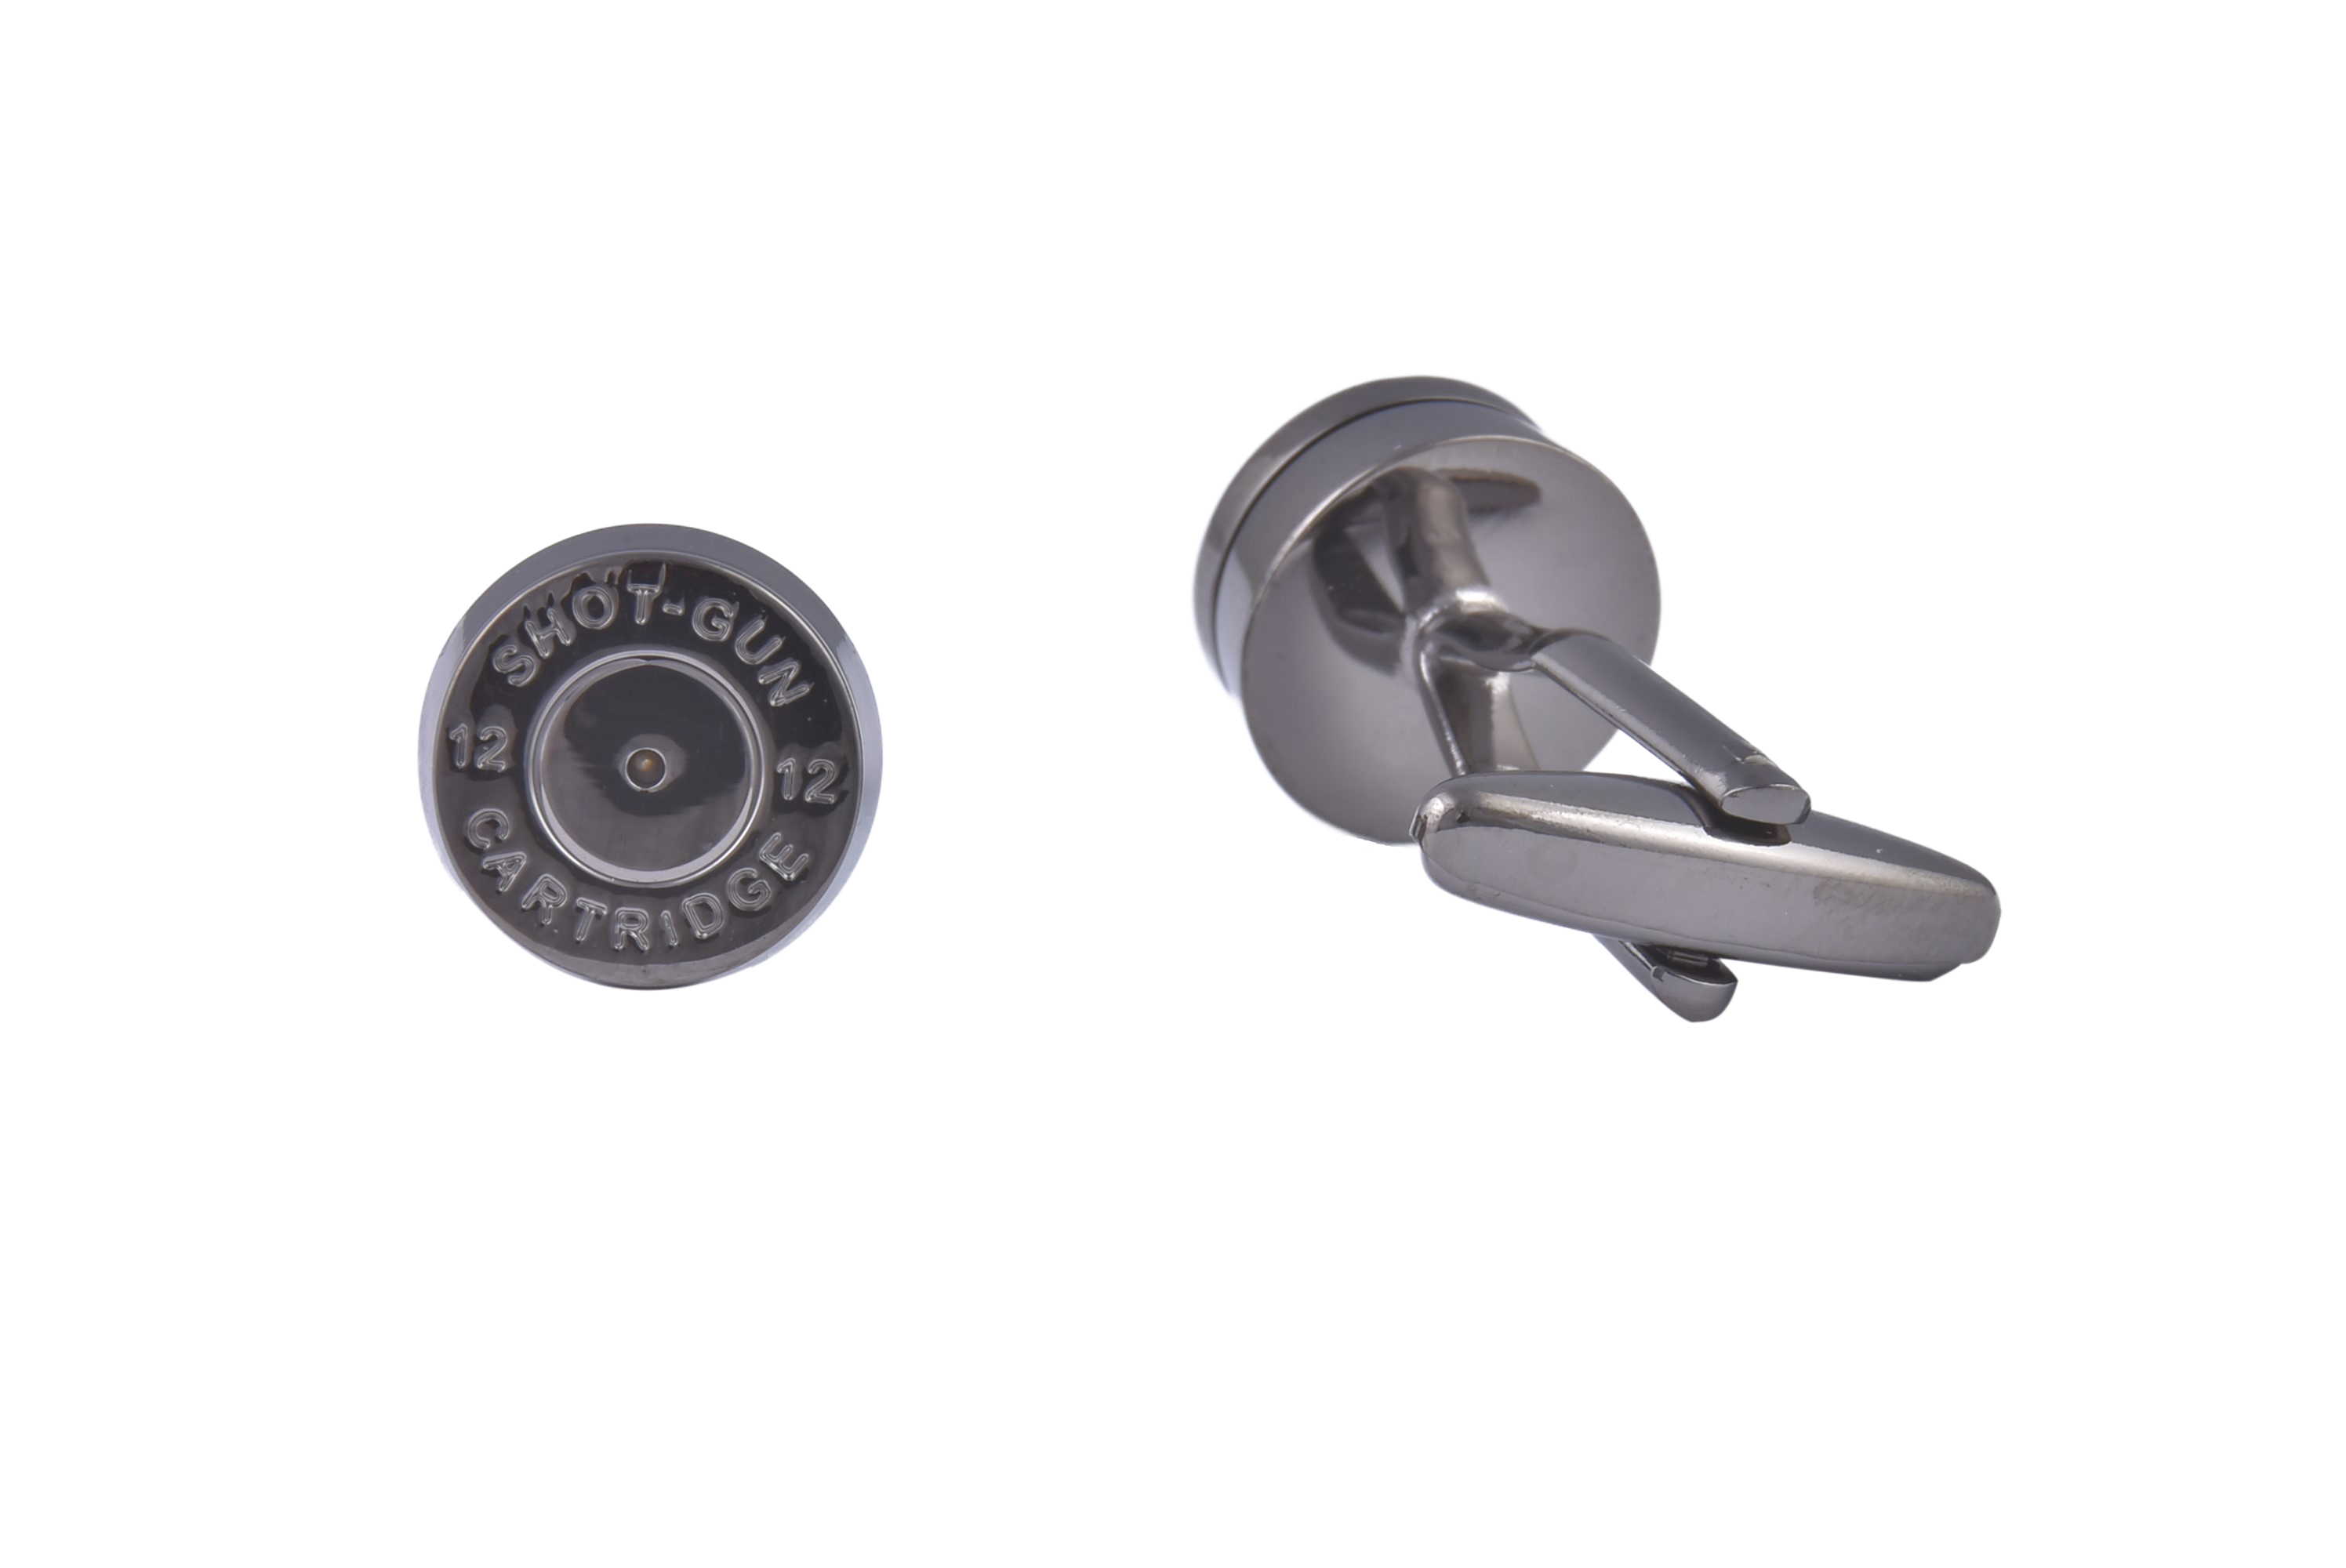 Shotgun Cartridge Pellet Silver Cufflinks